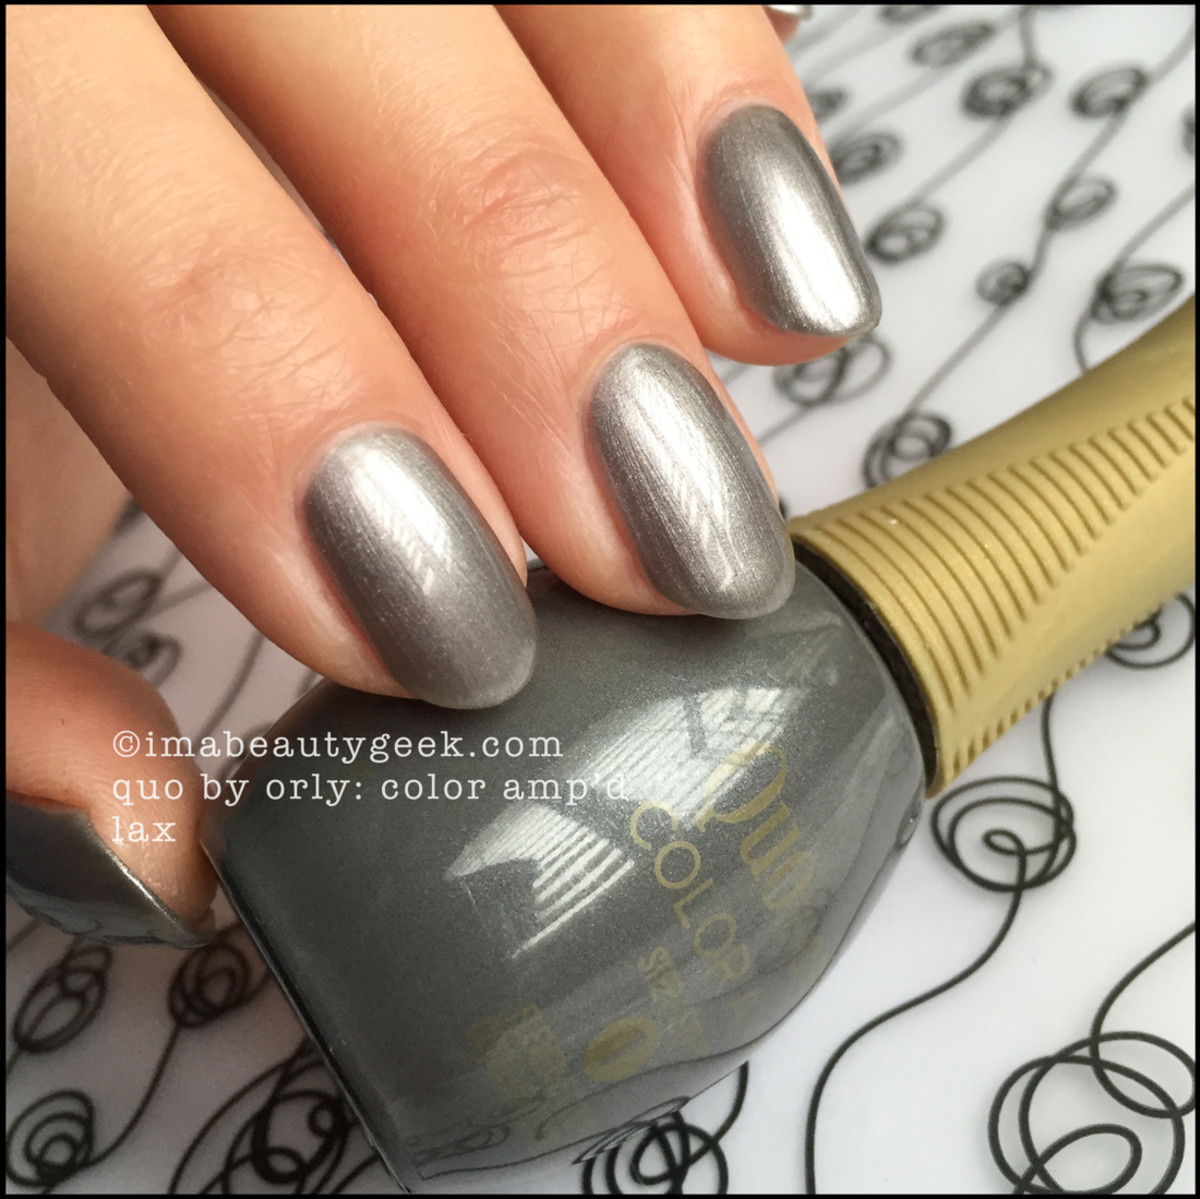 Quo by Orly Color Ampd LAX